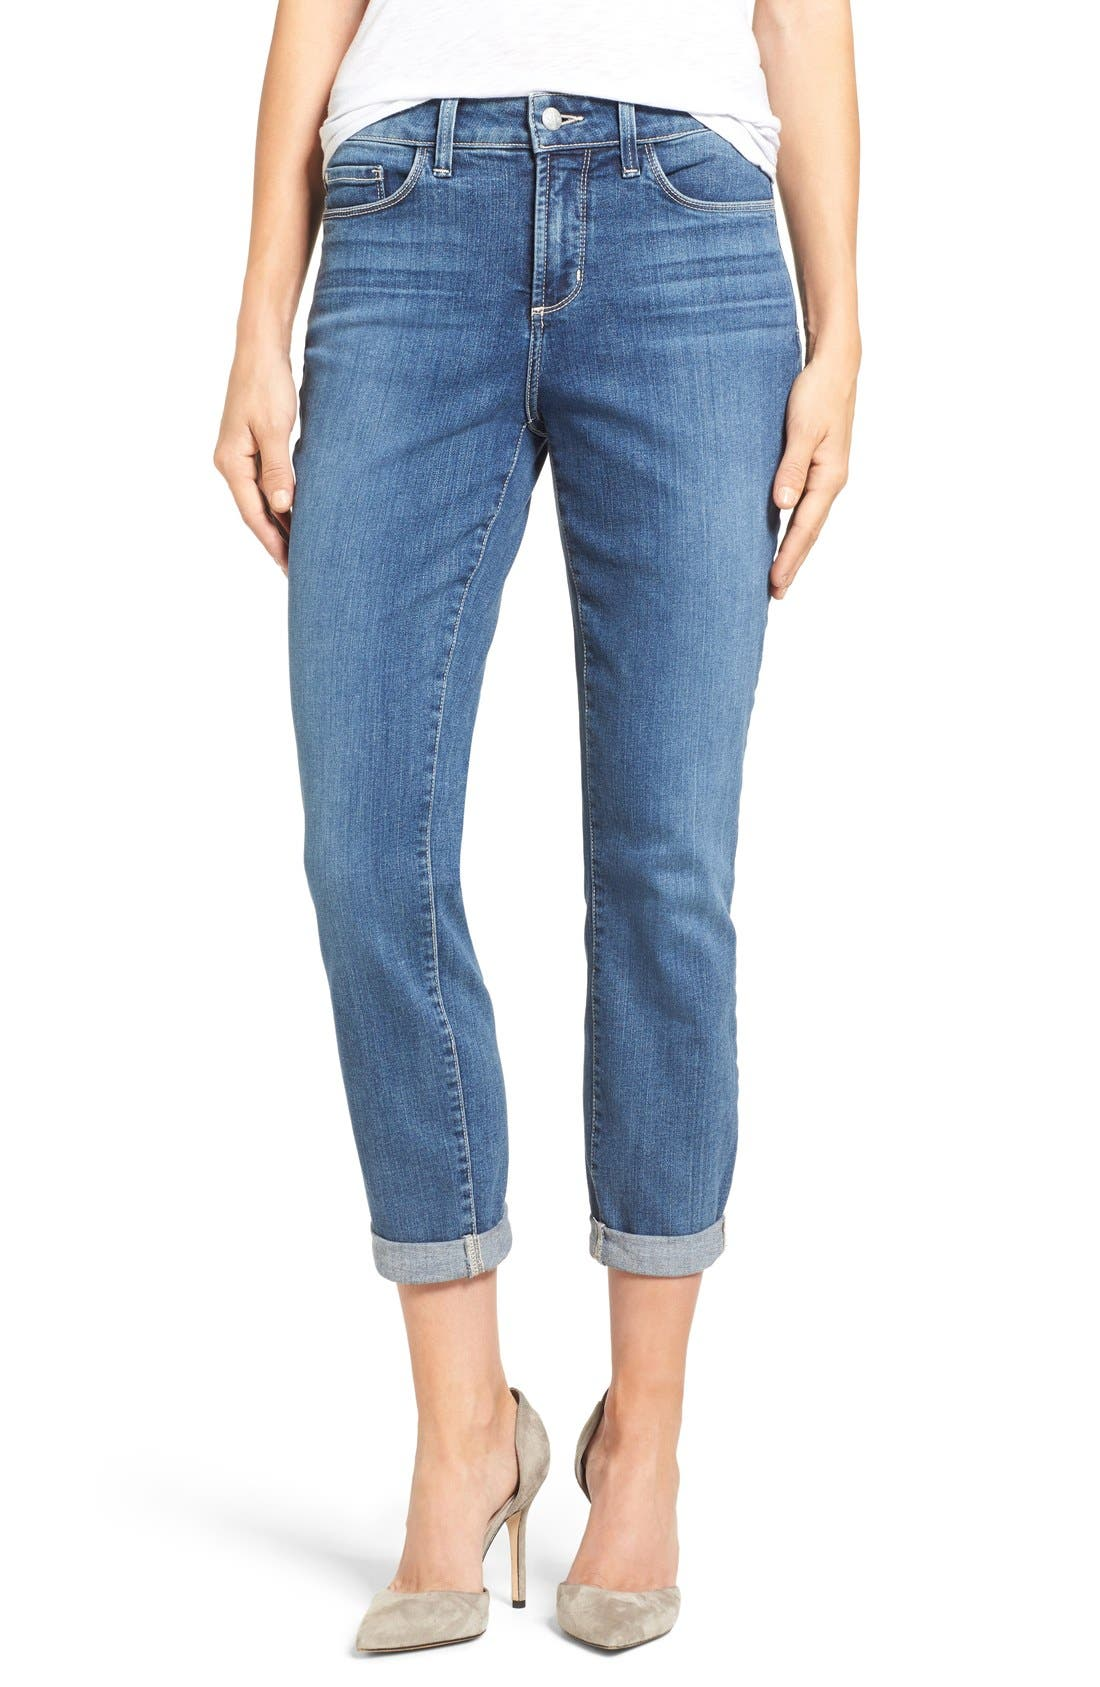 Alternate Image 1 Selected - NYDJ Alina Stretch Ankle Jeans (Heyburn) (Regular & Petite)